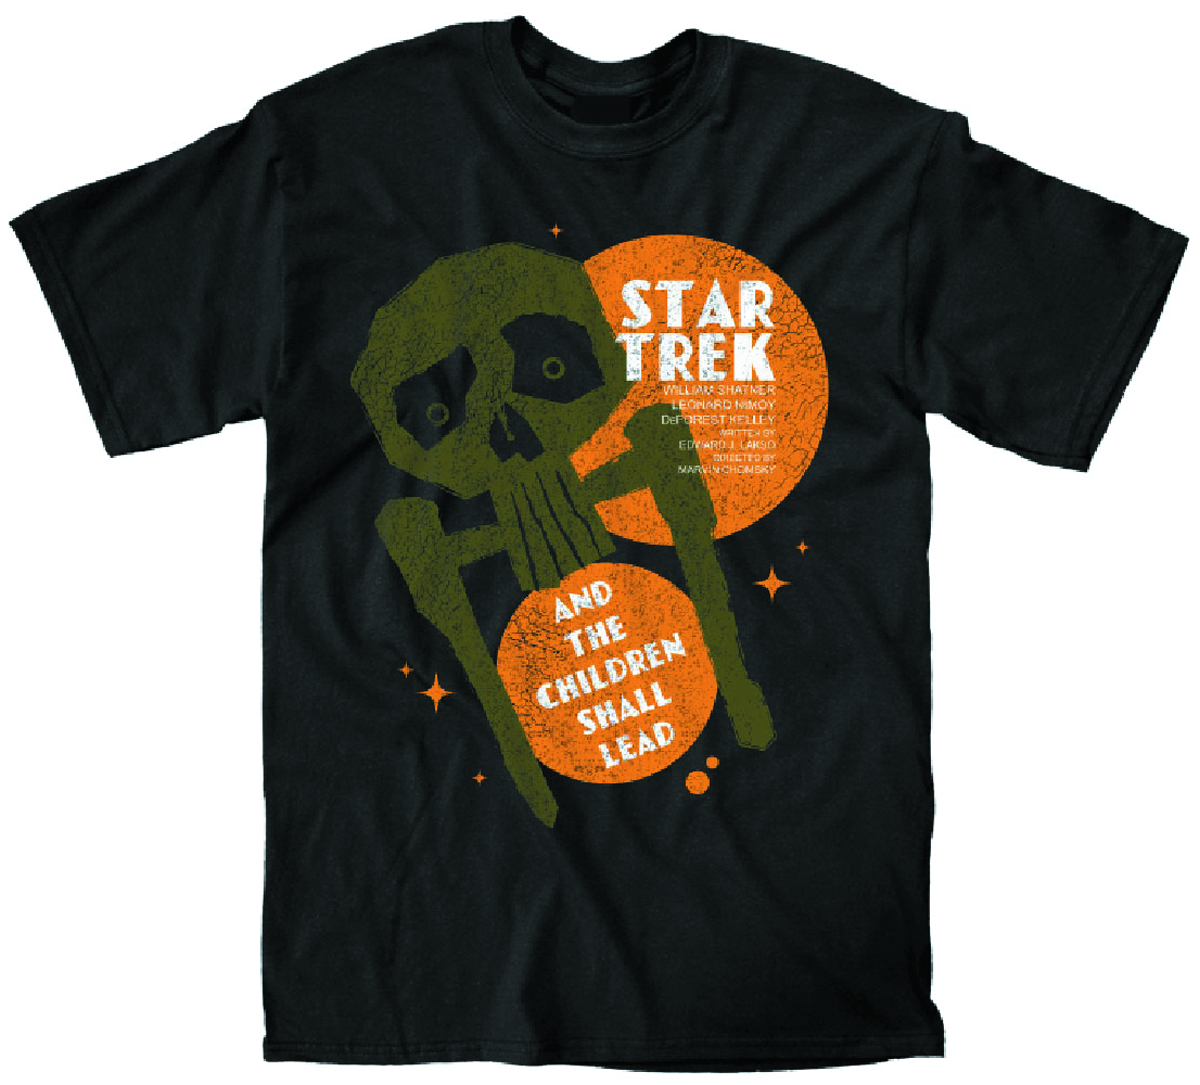 STAR TREK CHILDREN SHALL LEAD PX BLK T/S MED